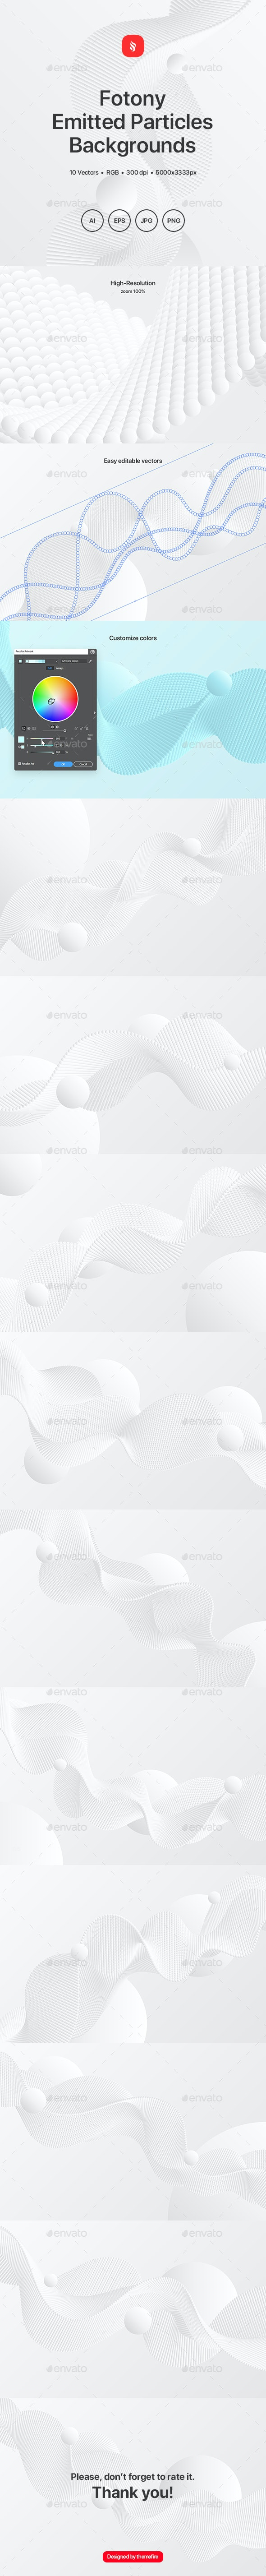 Fotony - Emitted Particles Array Backgrounds - Tech / Futuristic Backgrounds